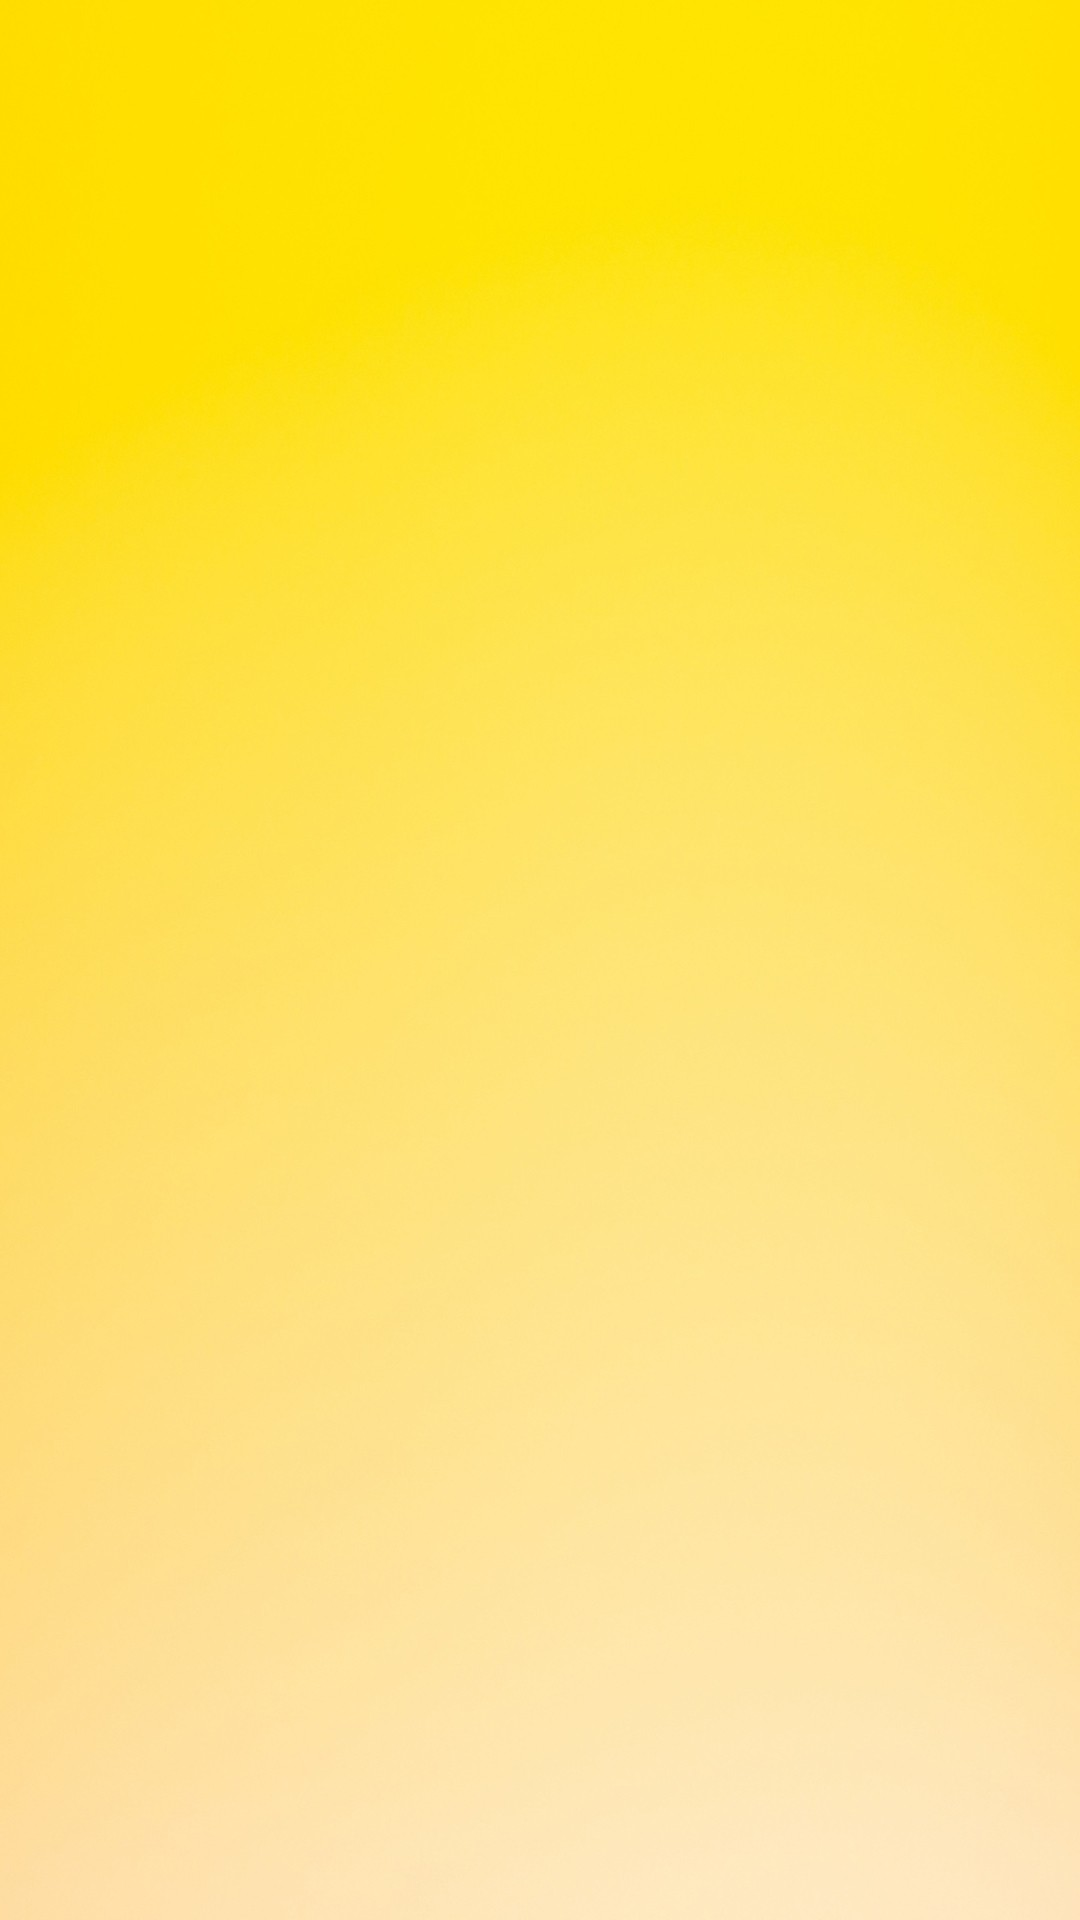 Yellow iphone 6 wallpaper